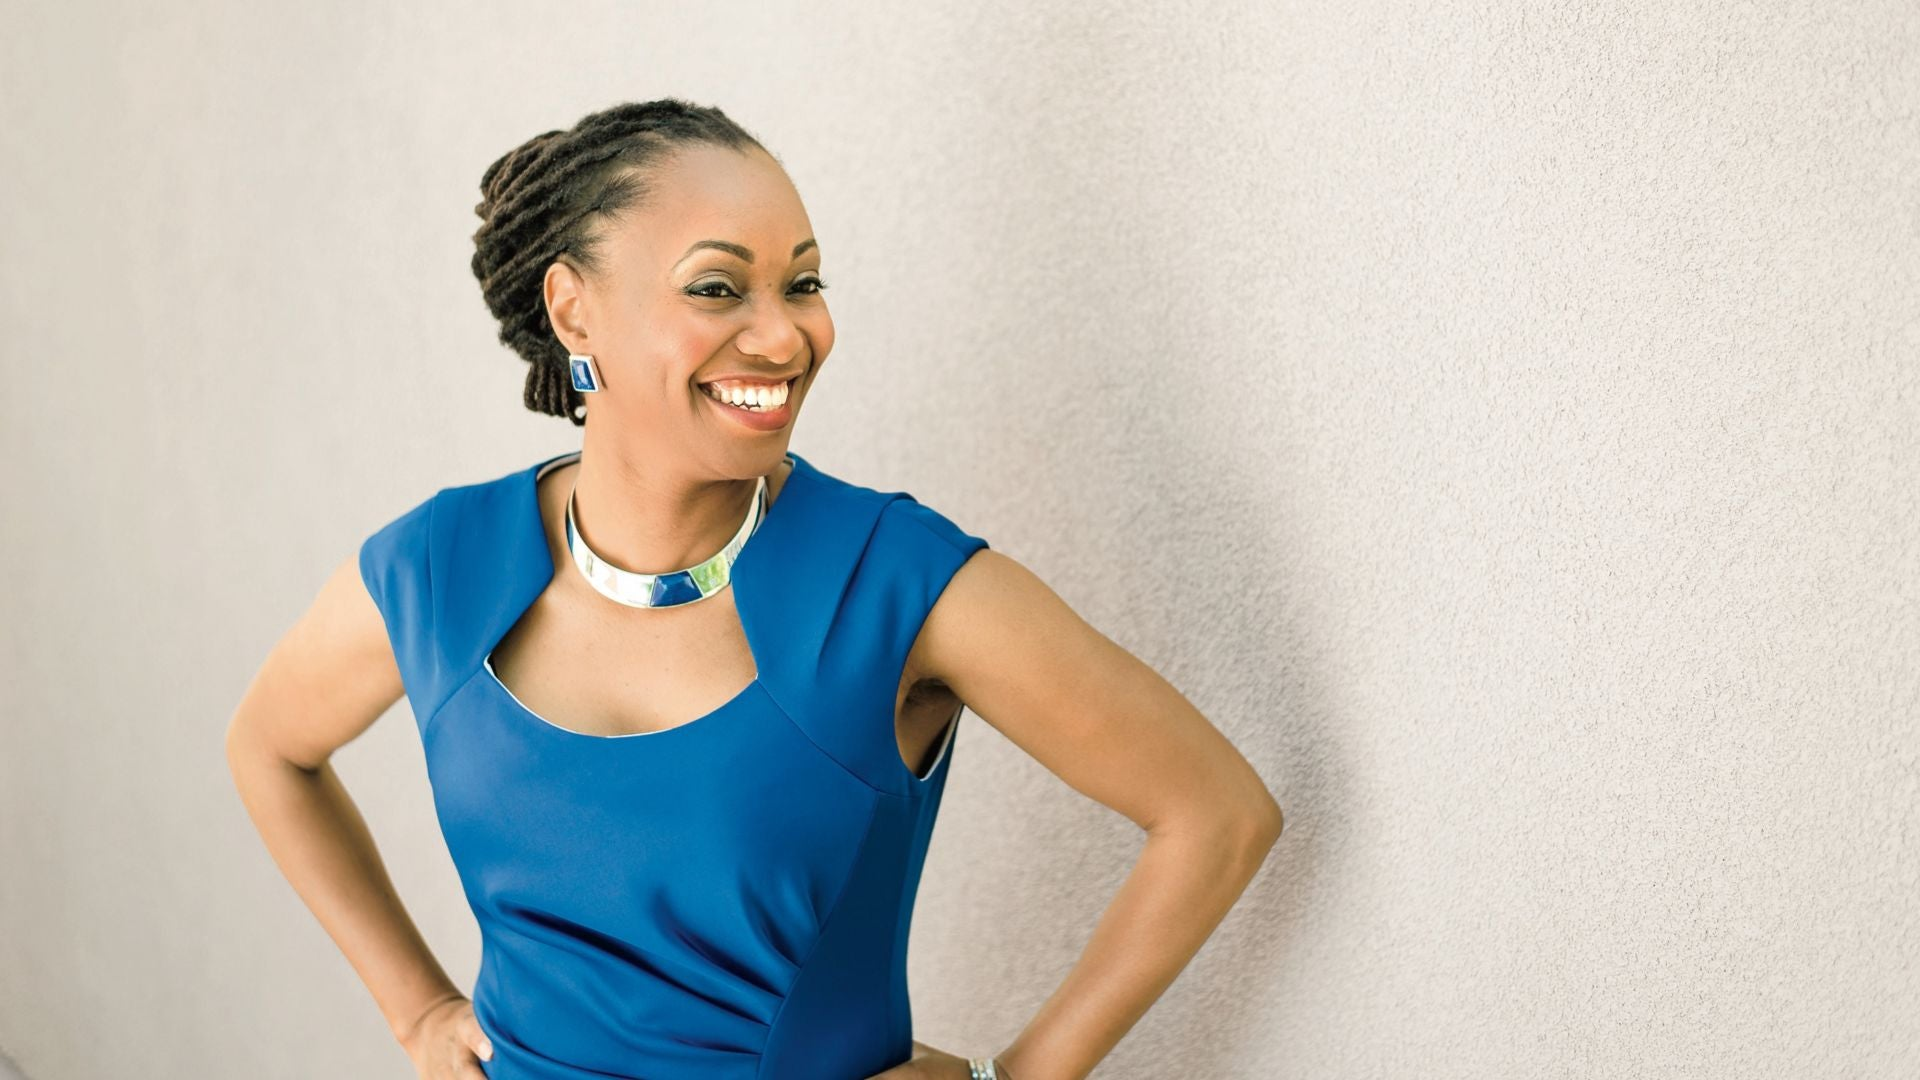 Hello From The Other Side: Dr. Hadiyah-Nicole Green Turned Pain Into Purpose